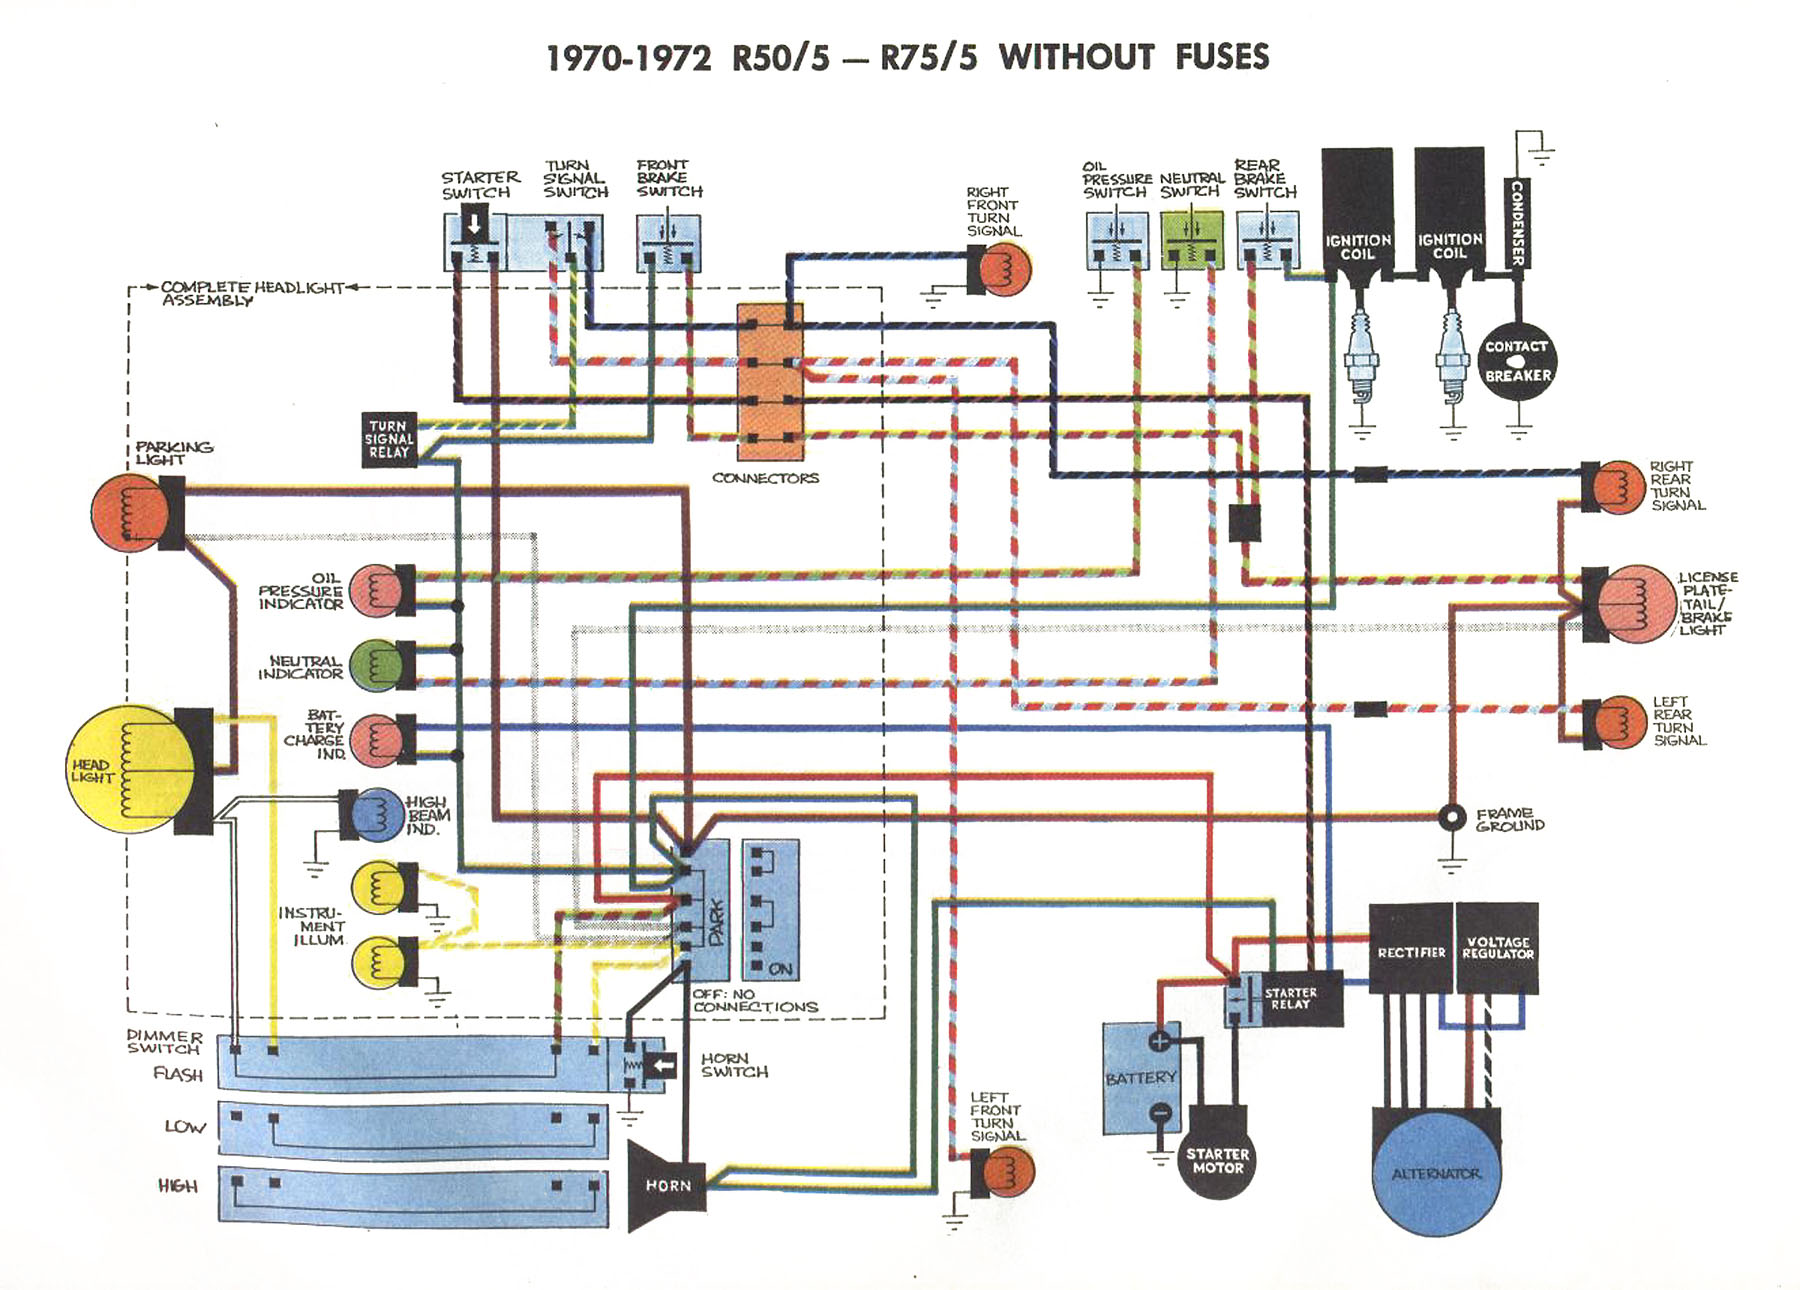 5_unfused_schematic 5 united articles wiring diagrams bmw r100rs gauge wiring diagram at mifinder.co